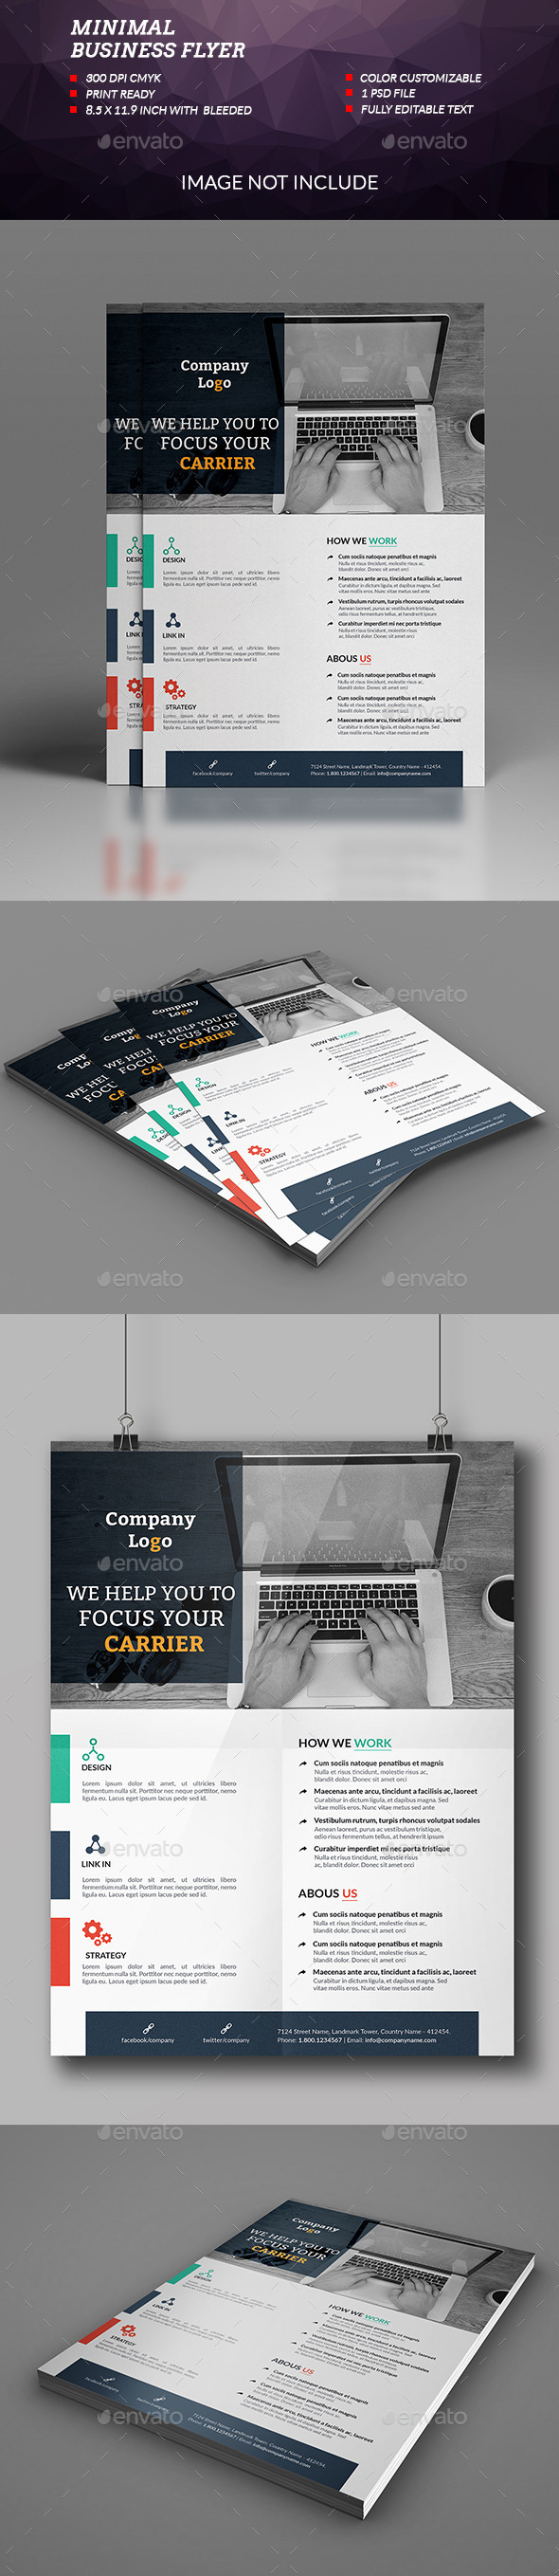 Minimal Business Flyer - Flyers Print Templates